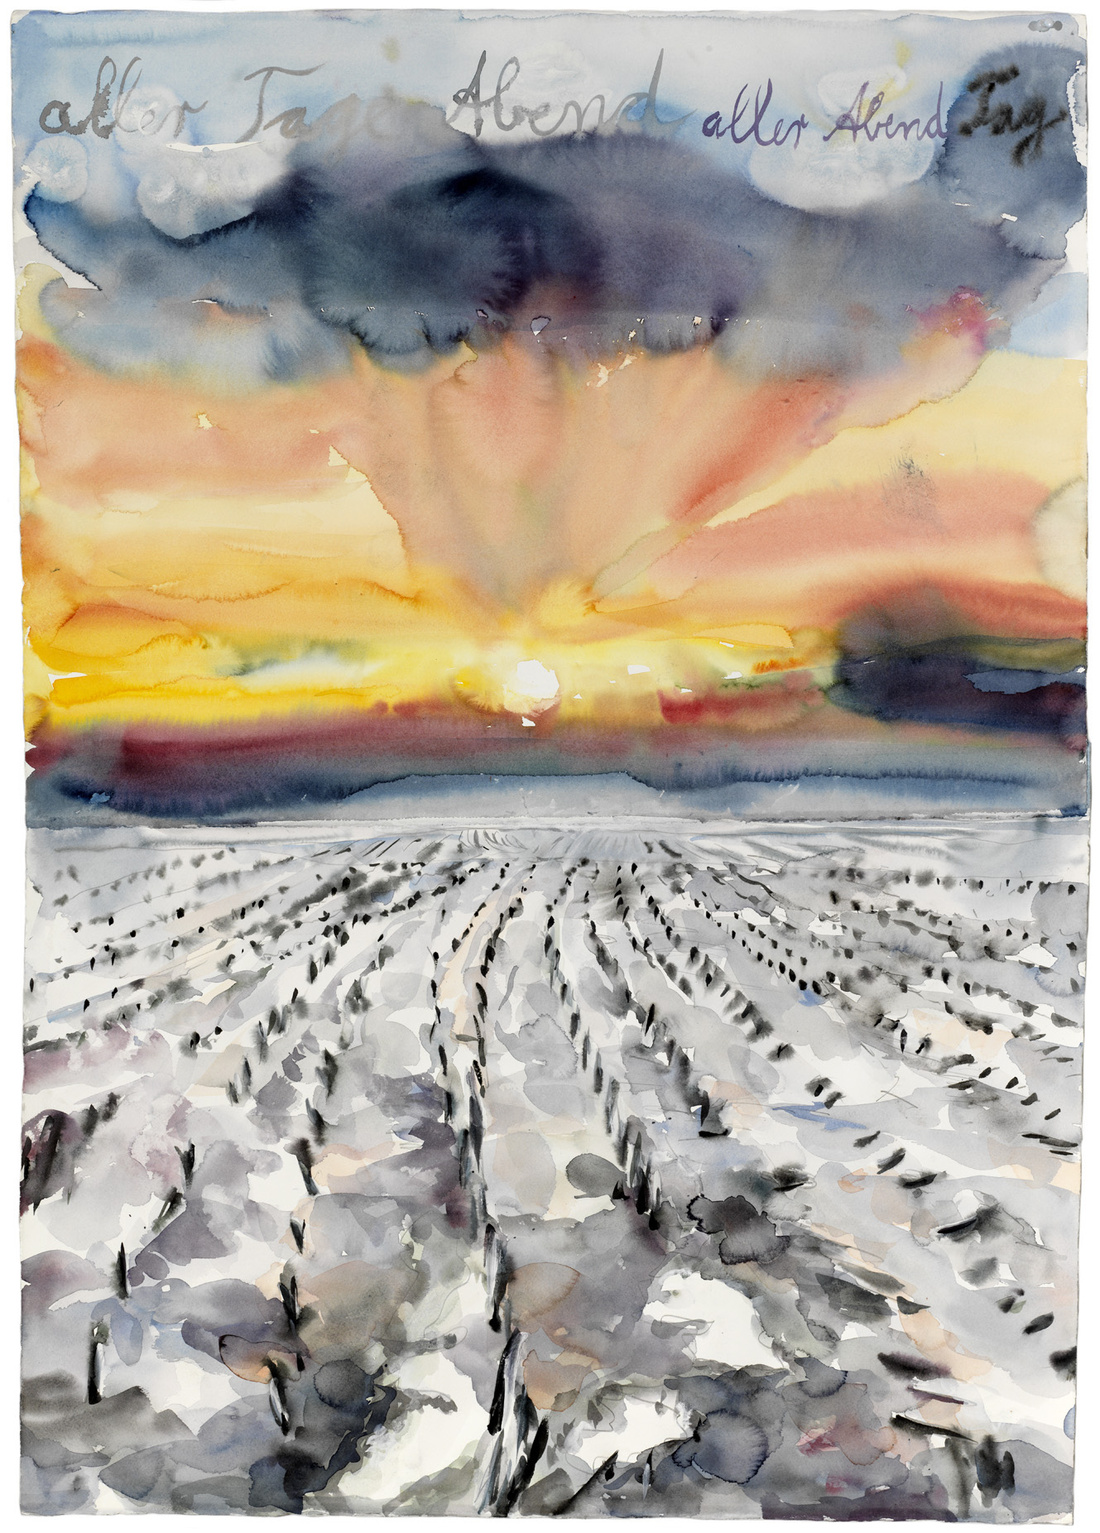 Anselm Kiefer, aller Tage Abend, aller Abende Tag (The Evening of All Days, the Day of All Evenings), 2014. © Anselm Kiefer. Photo © Charles Duprat. Courtesy of Gagosian.